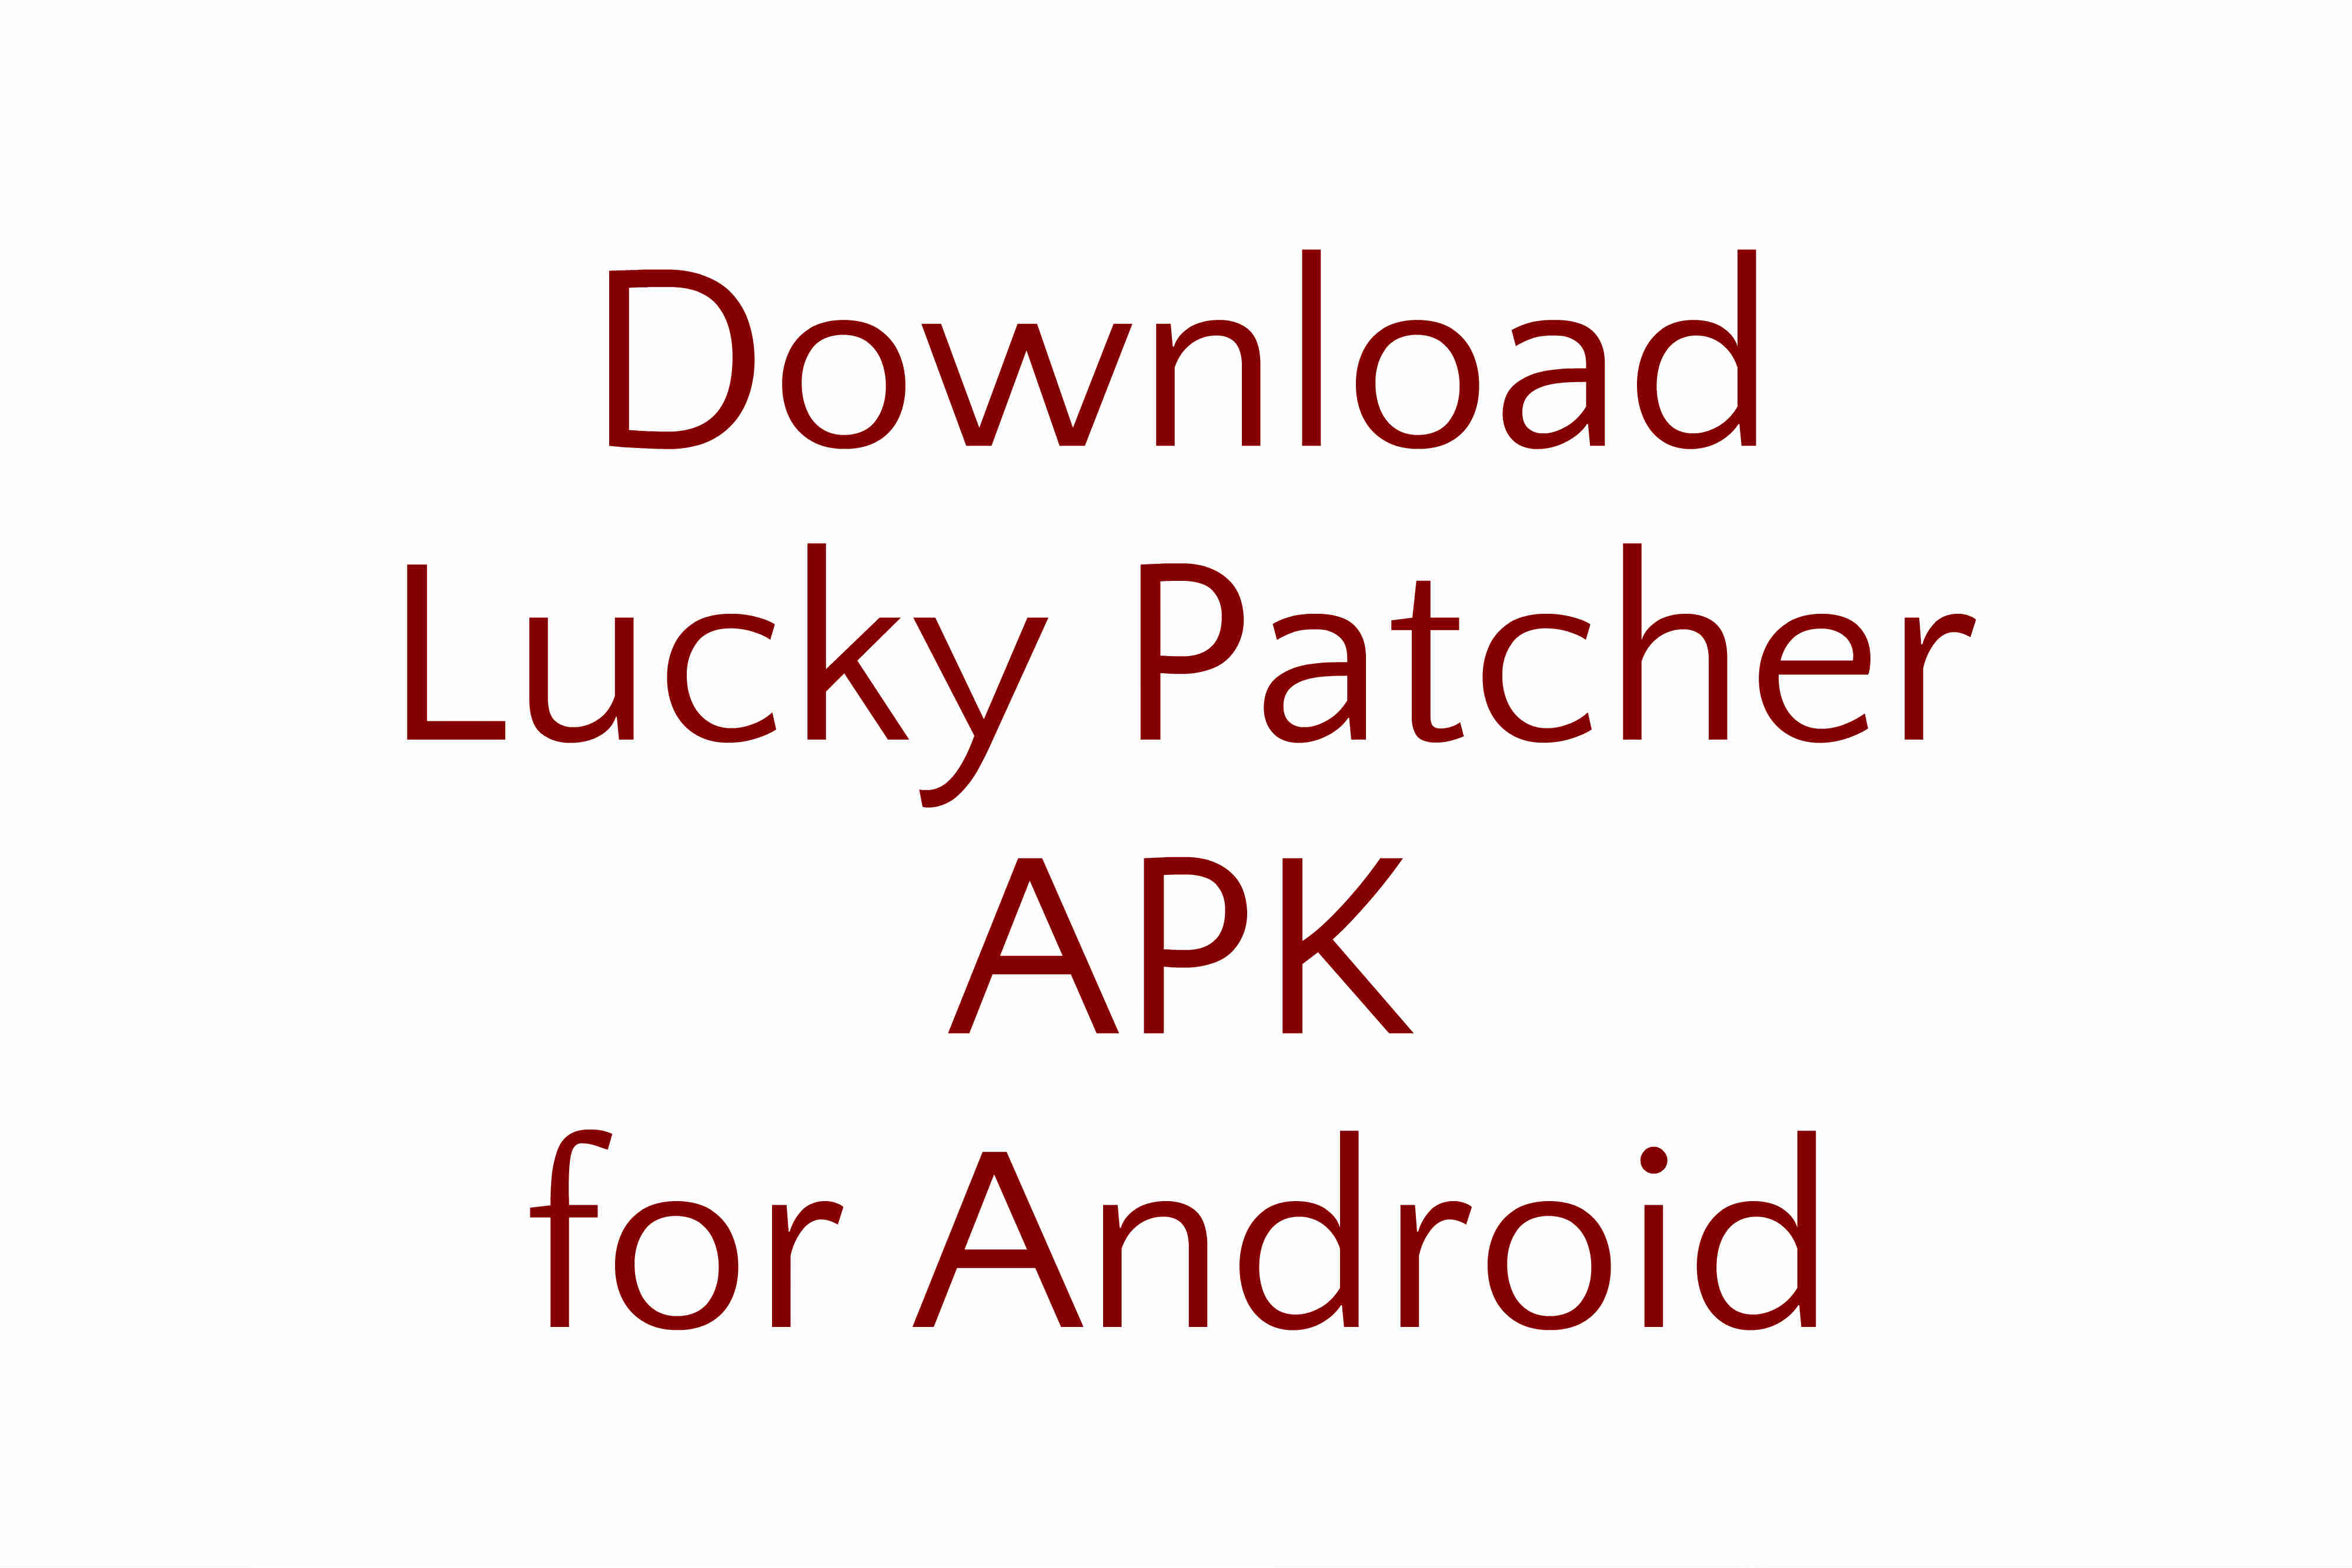 Download Lucky Patcher APK for Android